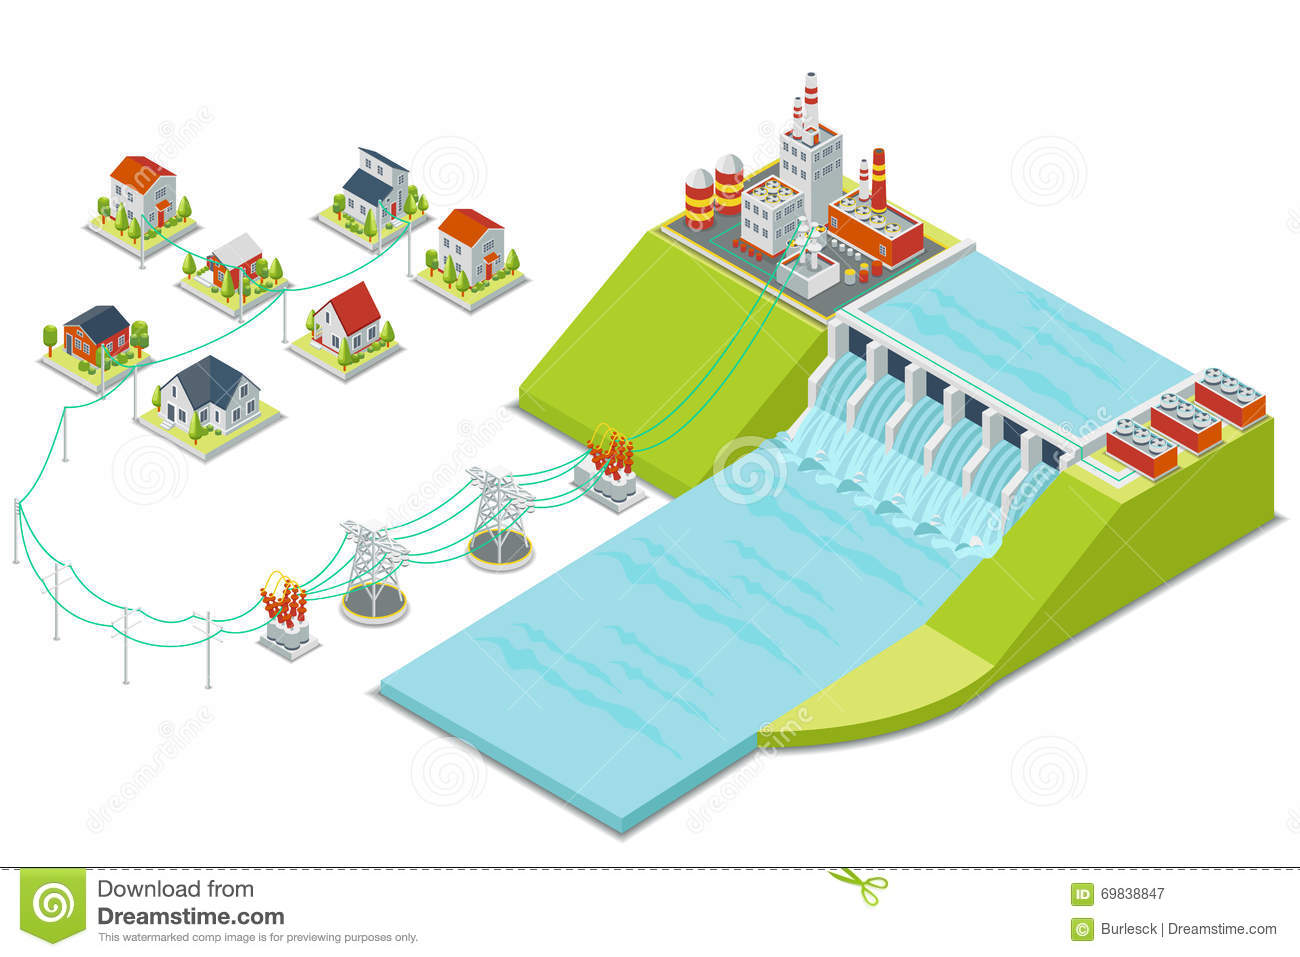 Hydroelectric Power Plant Illustration Modern Design Of Wiring Mini Hydro Diagram 3d Isometric Electricity Concept Stock Vector Rh Dreamstime Com